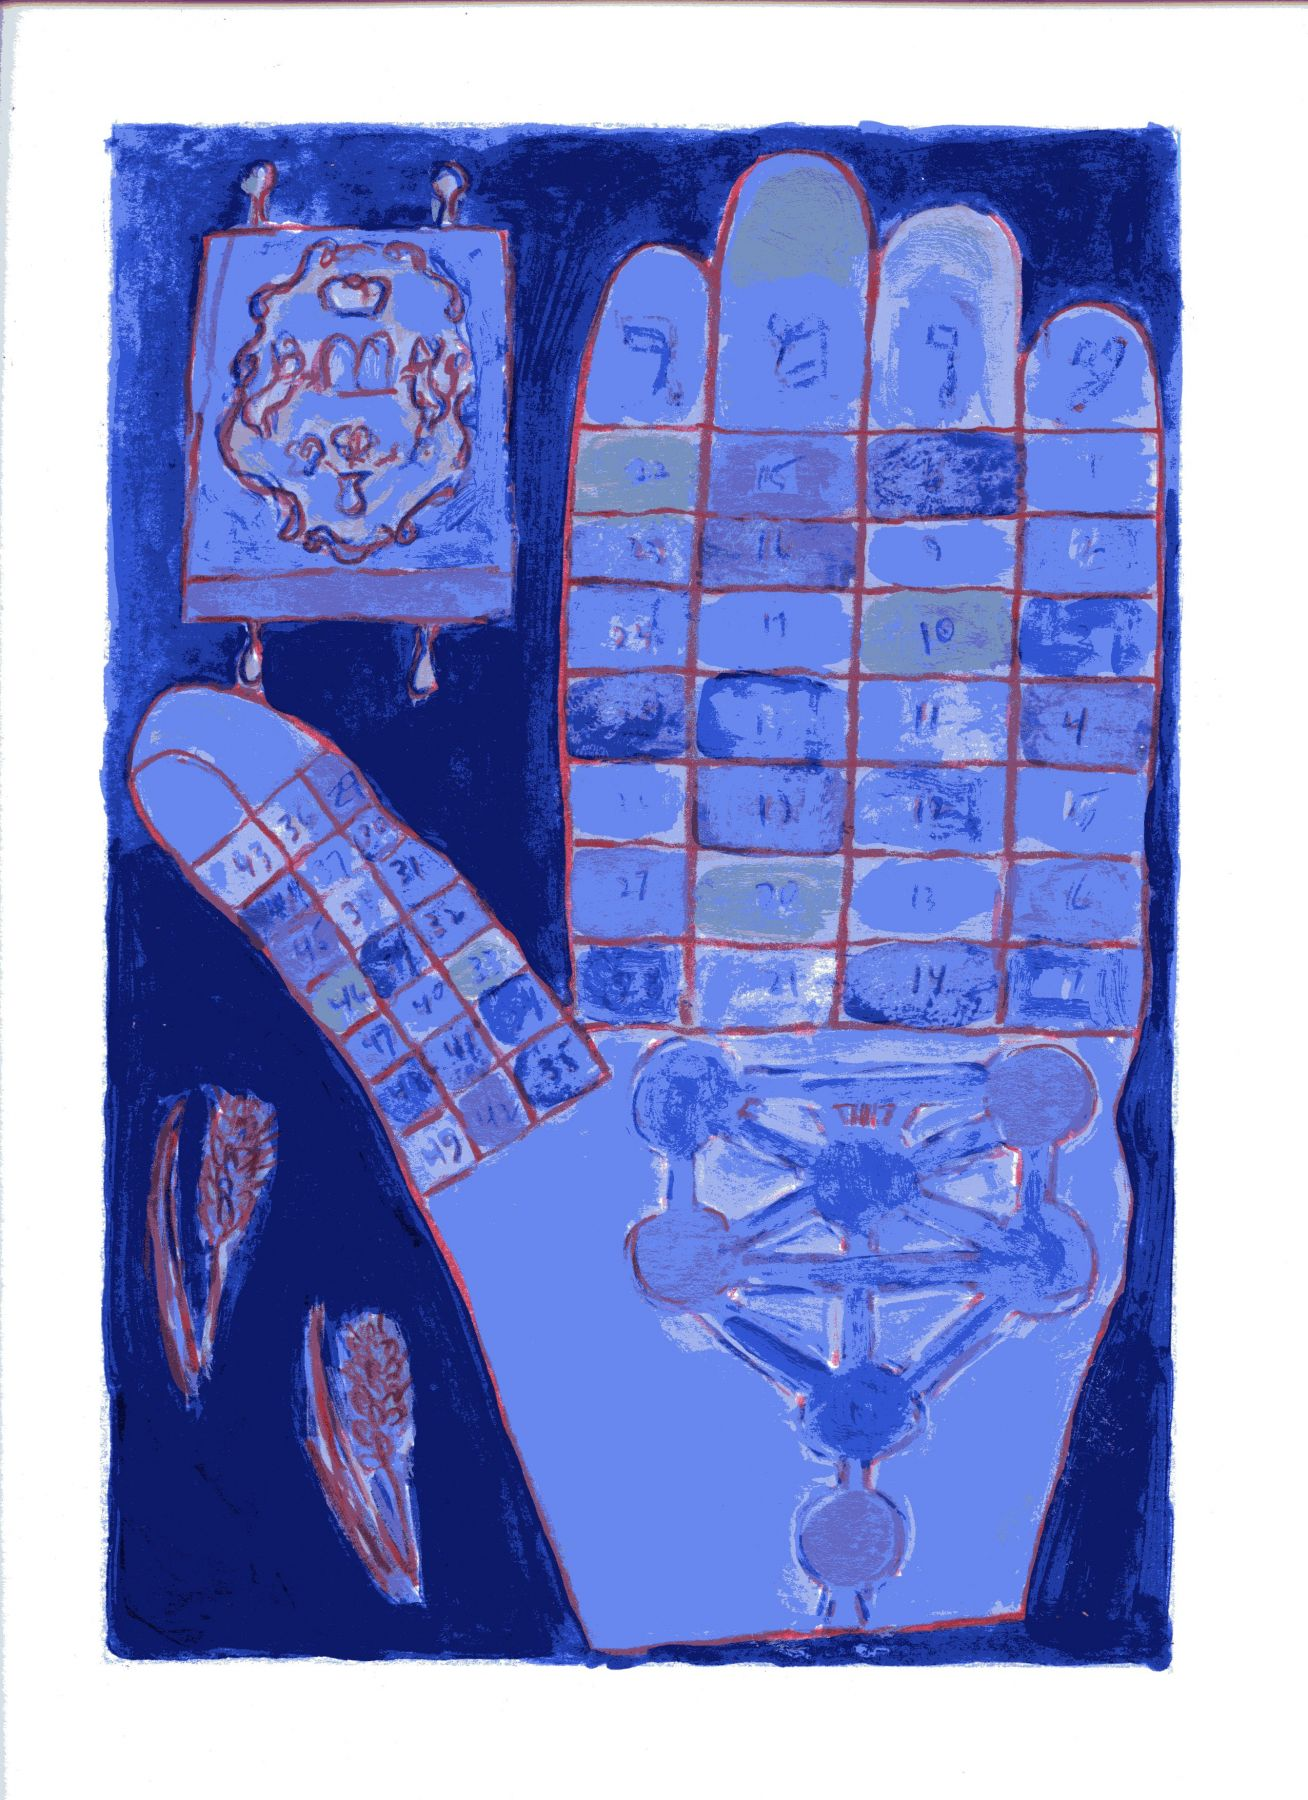 mark podwal, Omer Calendar Hamsa (SOLD), 2011, acrylic, gouache and colored pencil on paper, 16 x 12 inches